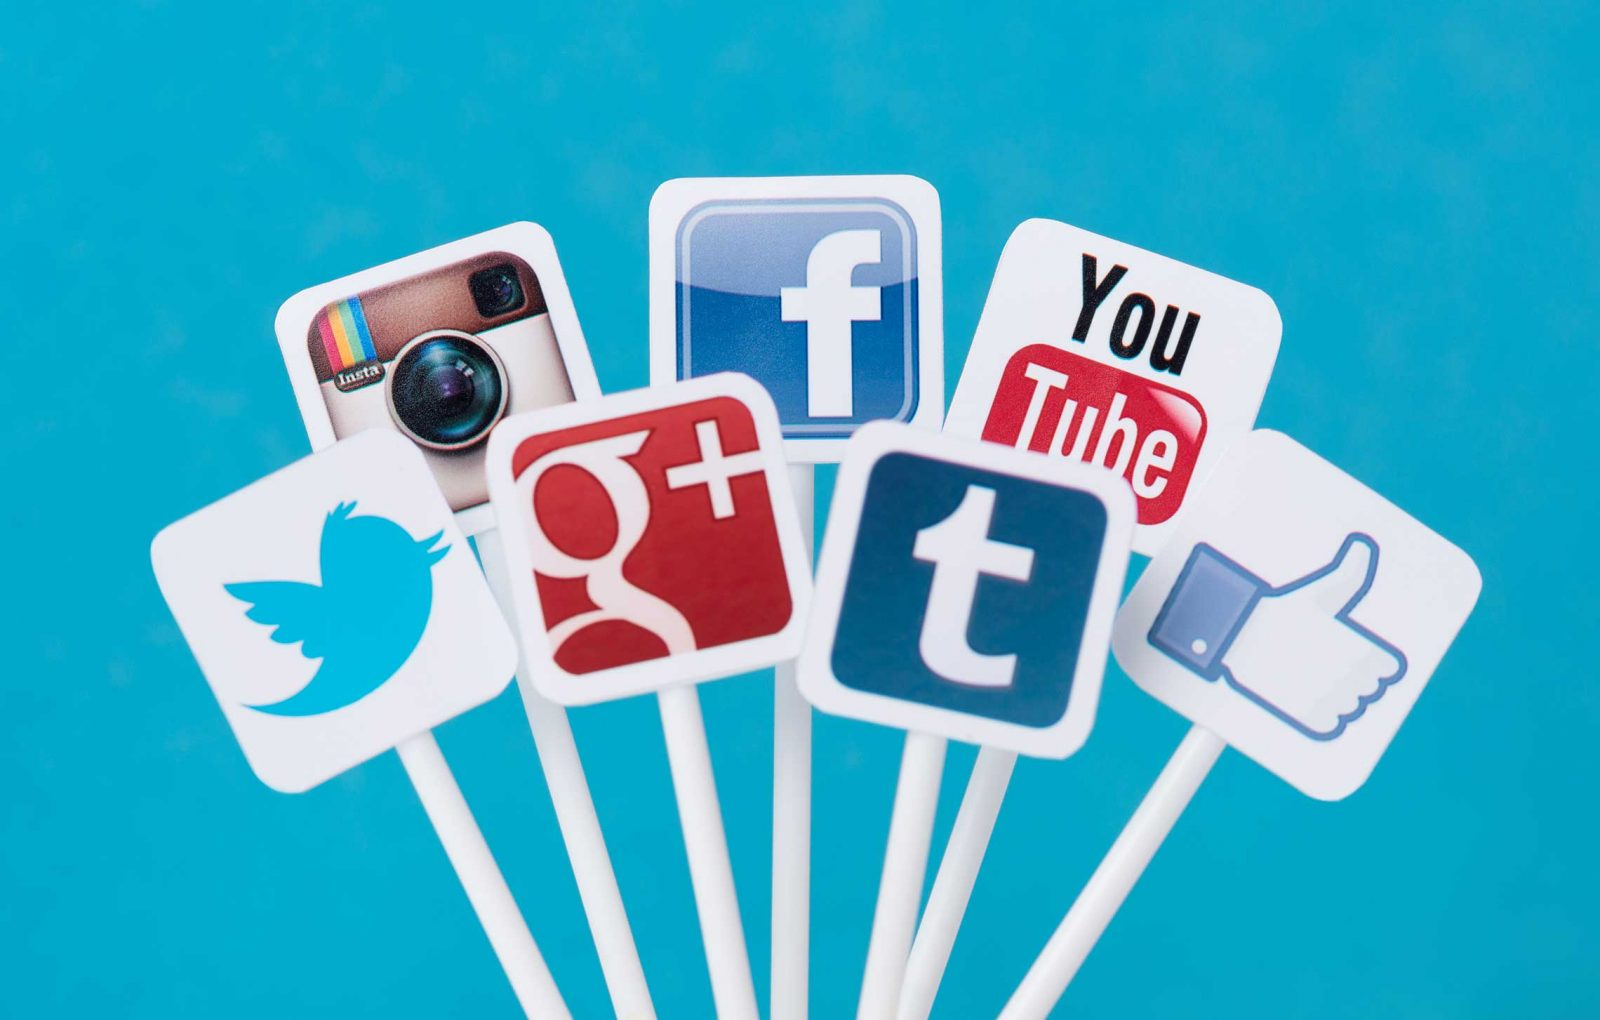 Social Media Management: These are some of our services